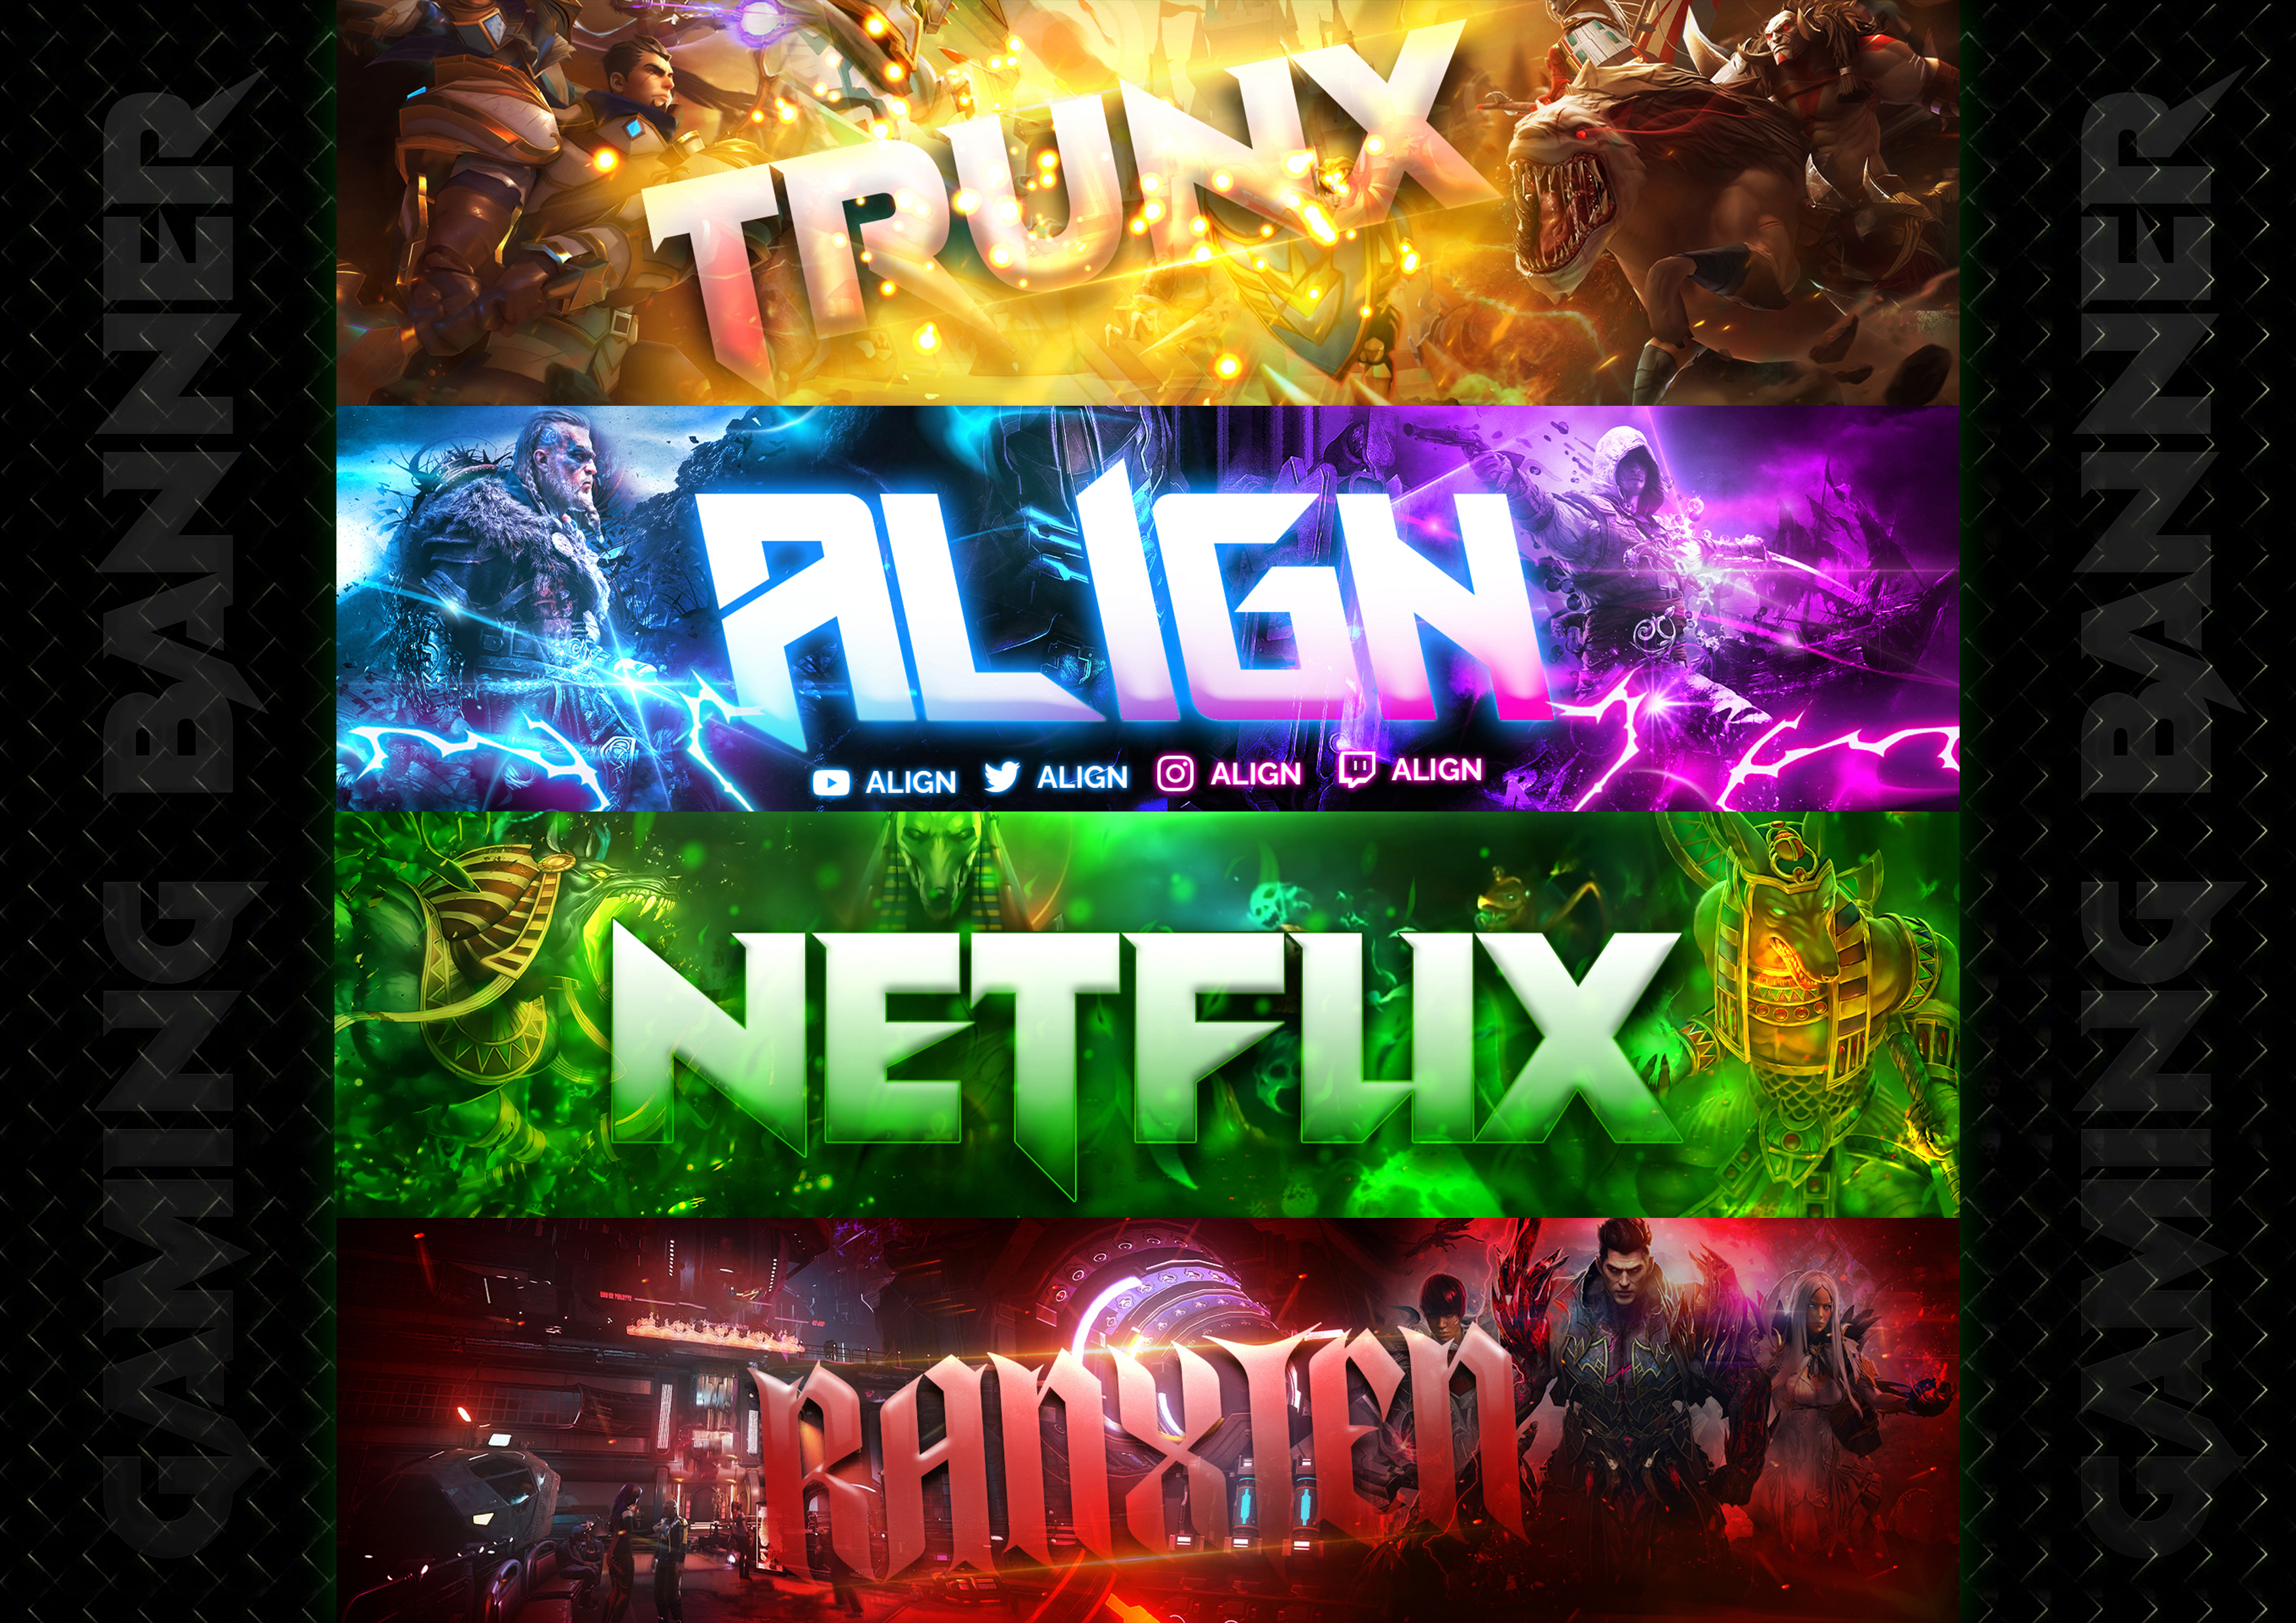 I will design gaming banner,  YouTube Banner,  twitter Banner,  twitch,  etc 24 hrs